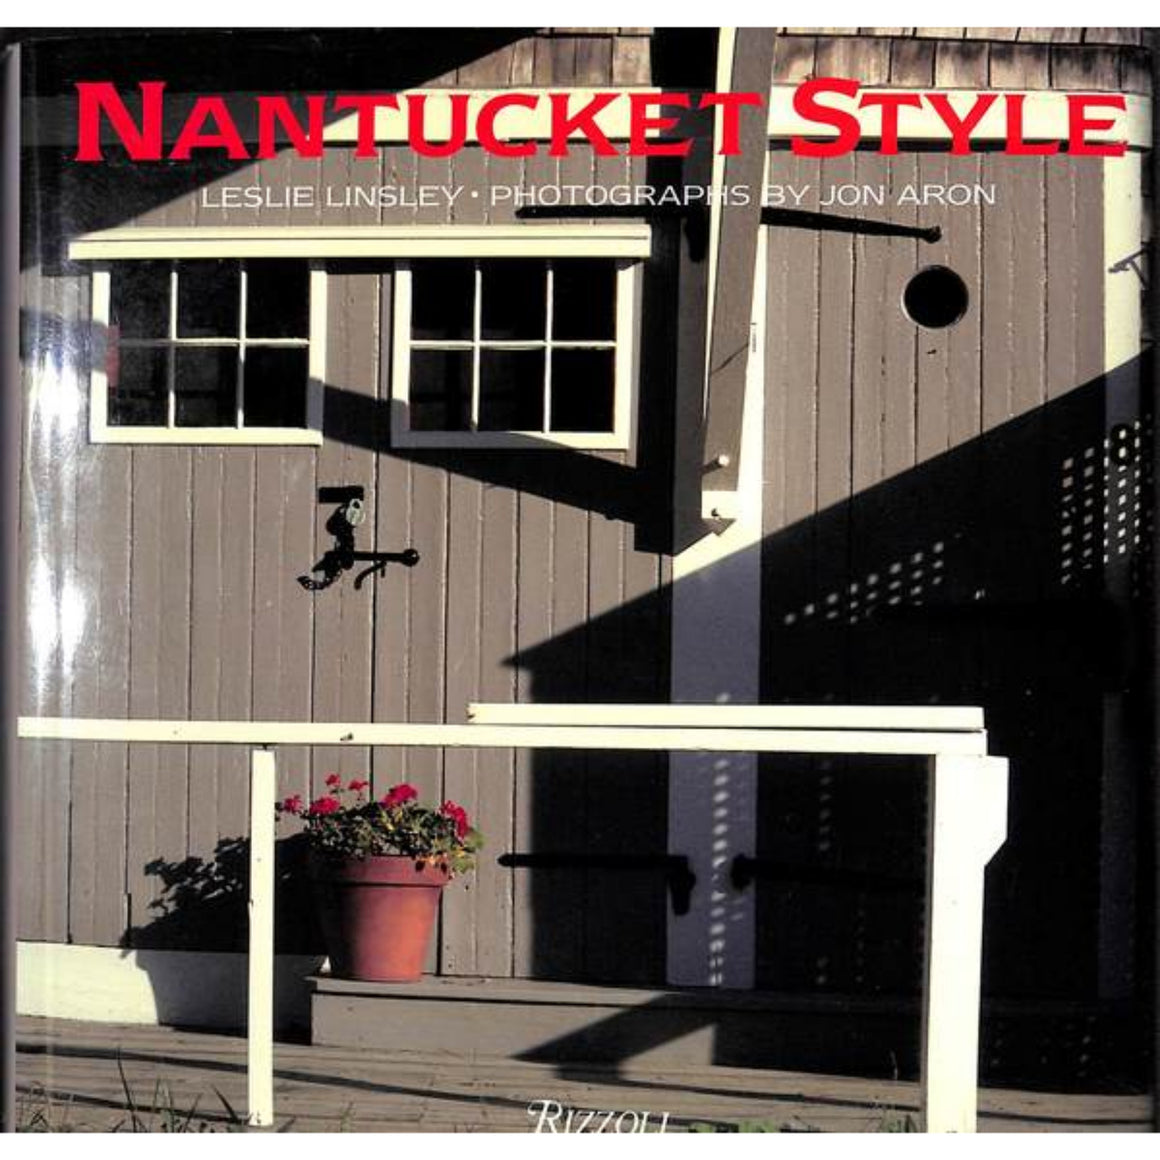 'Nantucket Style' by Leslie Linsley